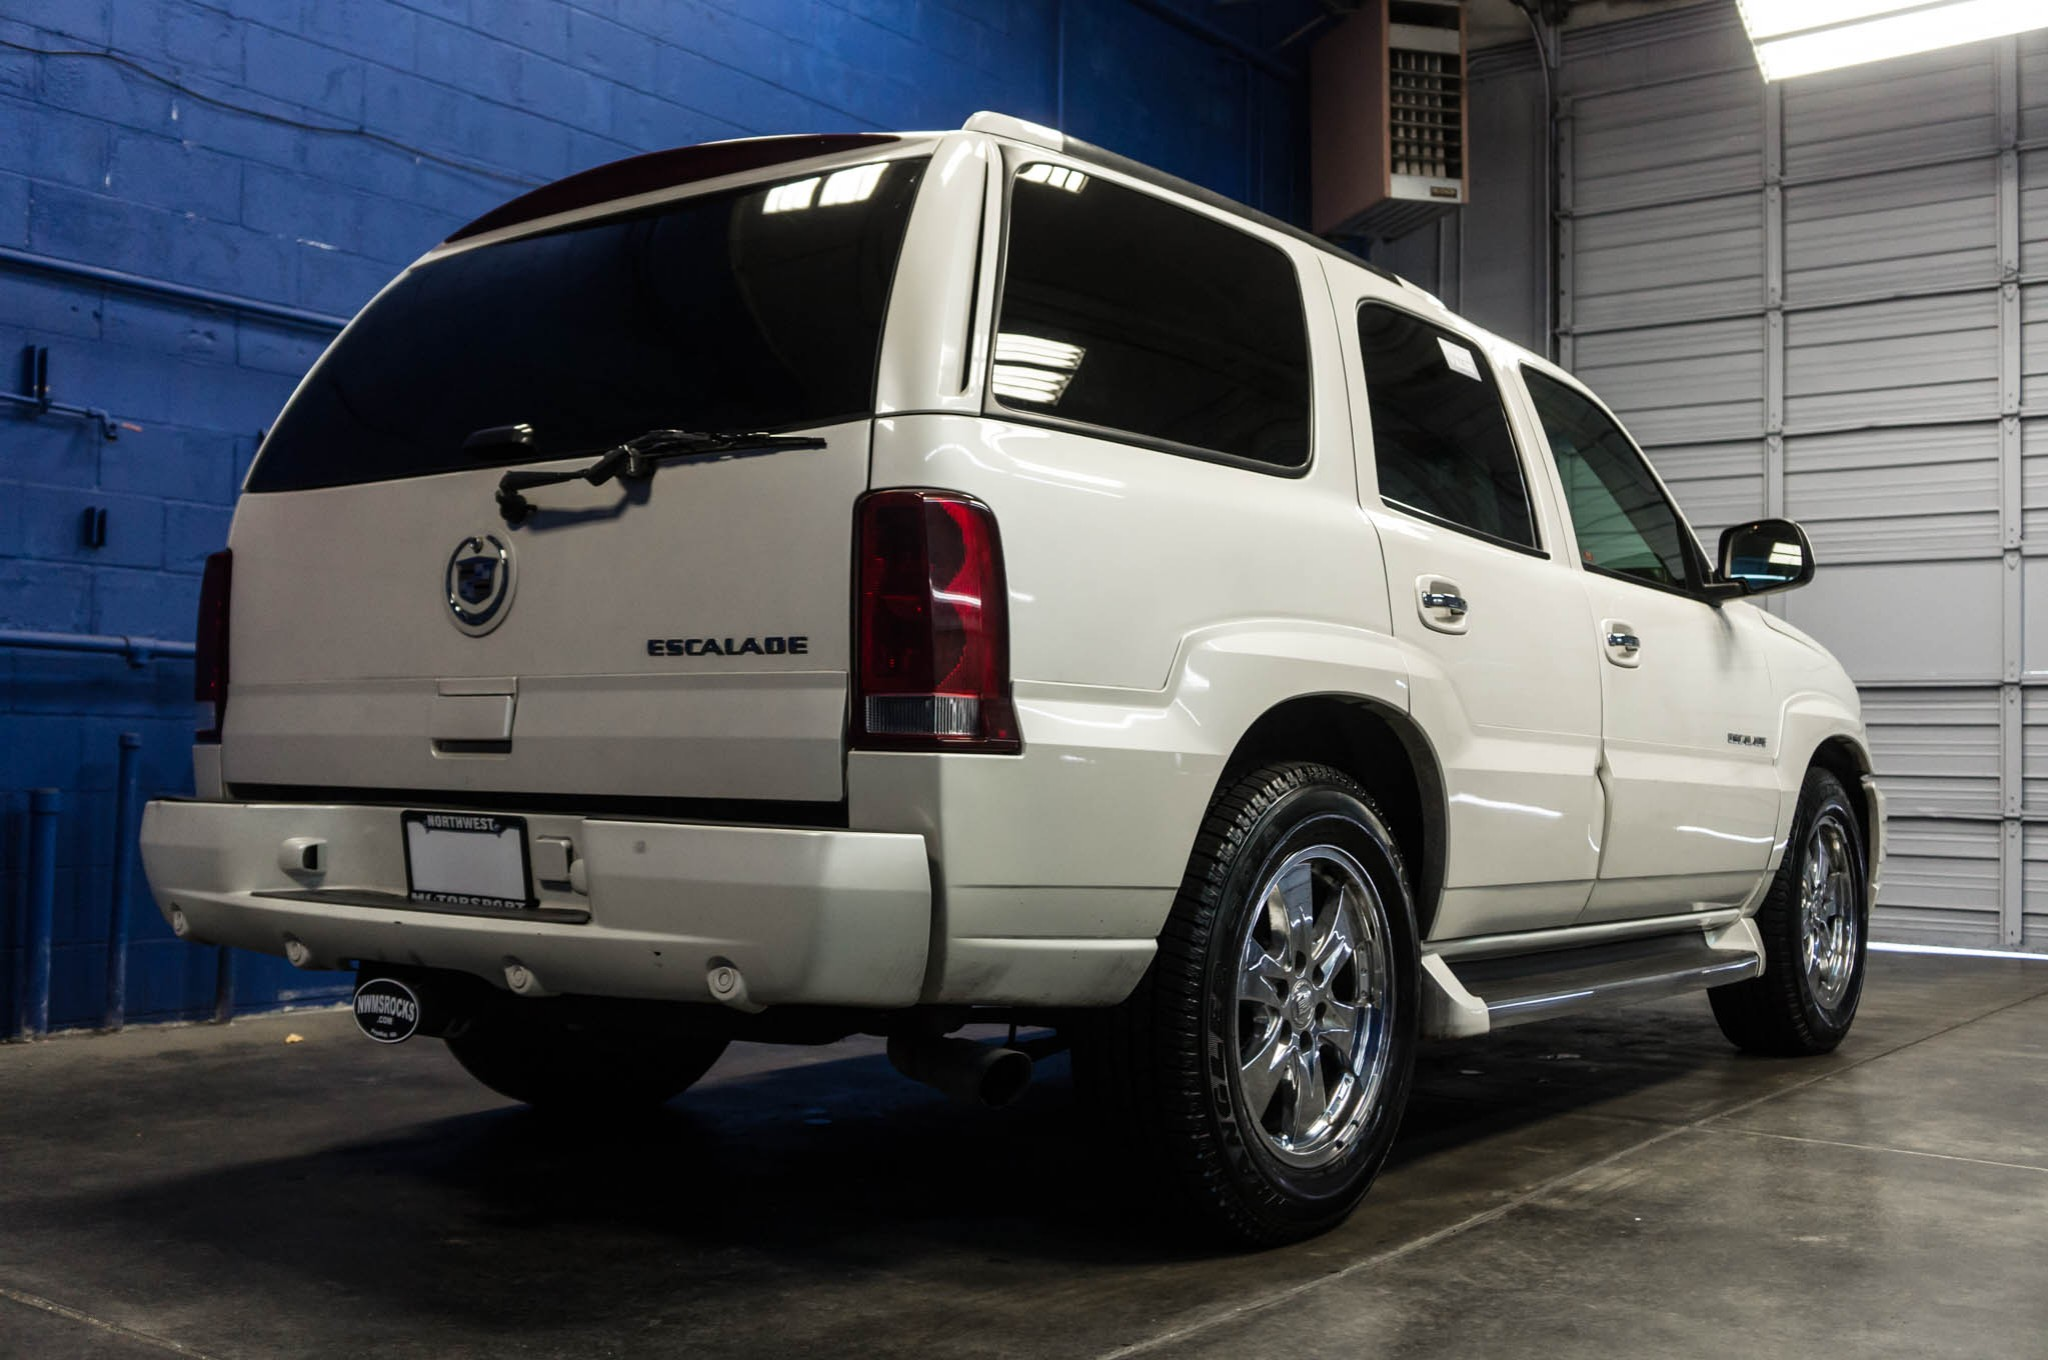 escalade loaded for sale esv cadillac youtube watch navigation